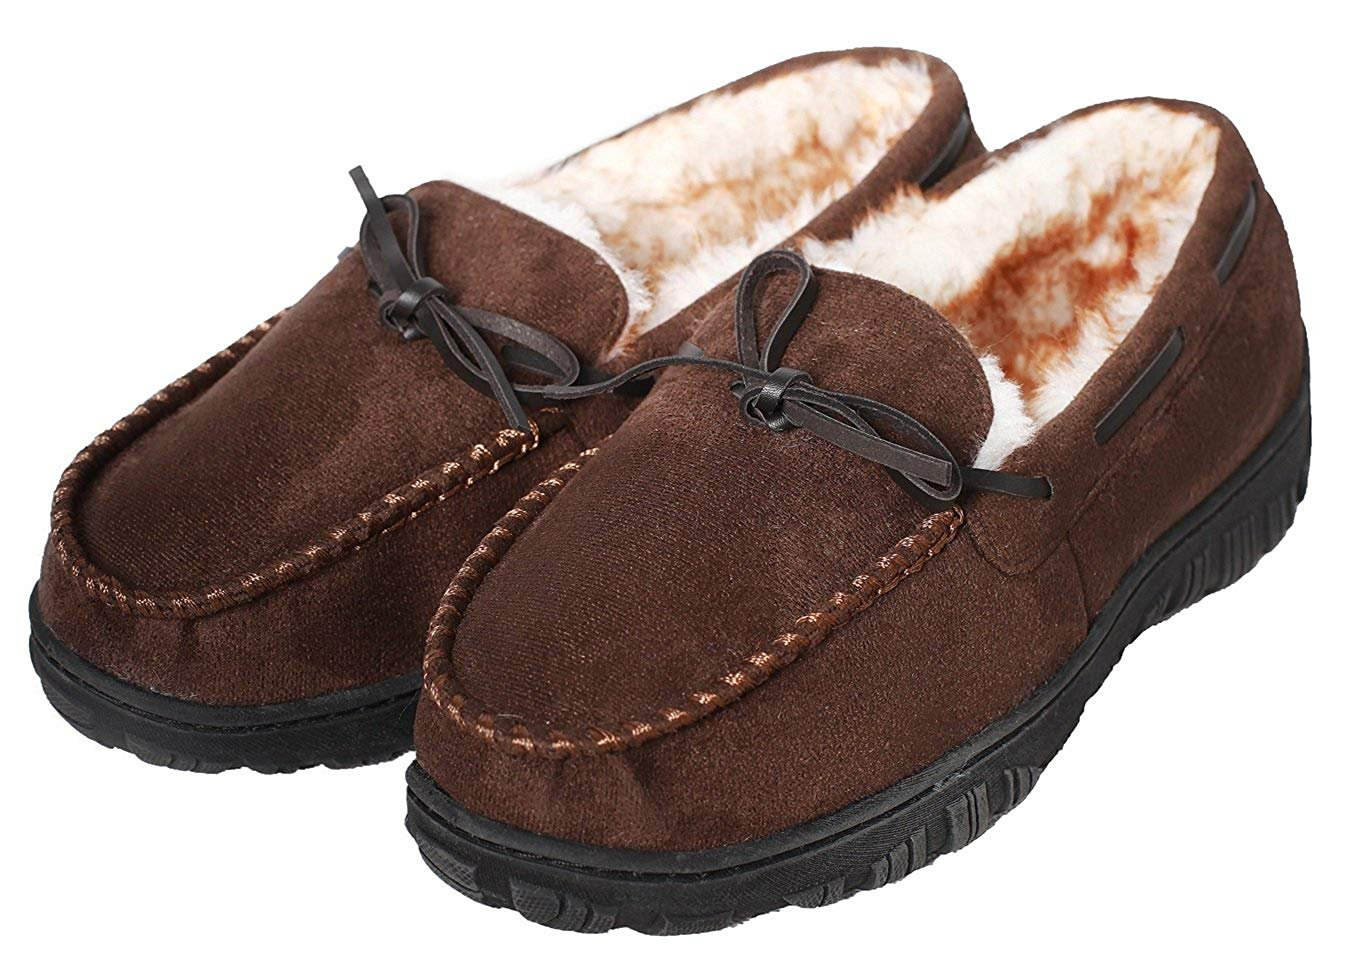 70249f1dd64 Get Quotations · CareBey Men s Winter Comfortable Warm Moccasins Slippers  With Anti Slip Rubber Sole Loafers Shoes